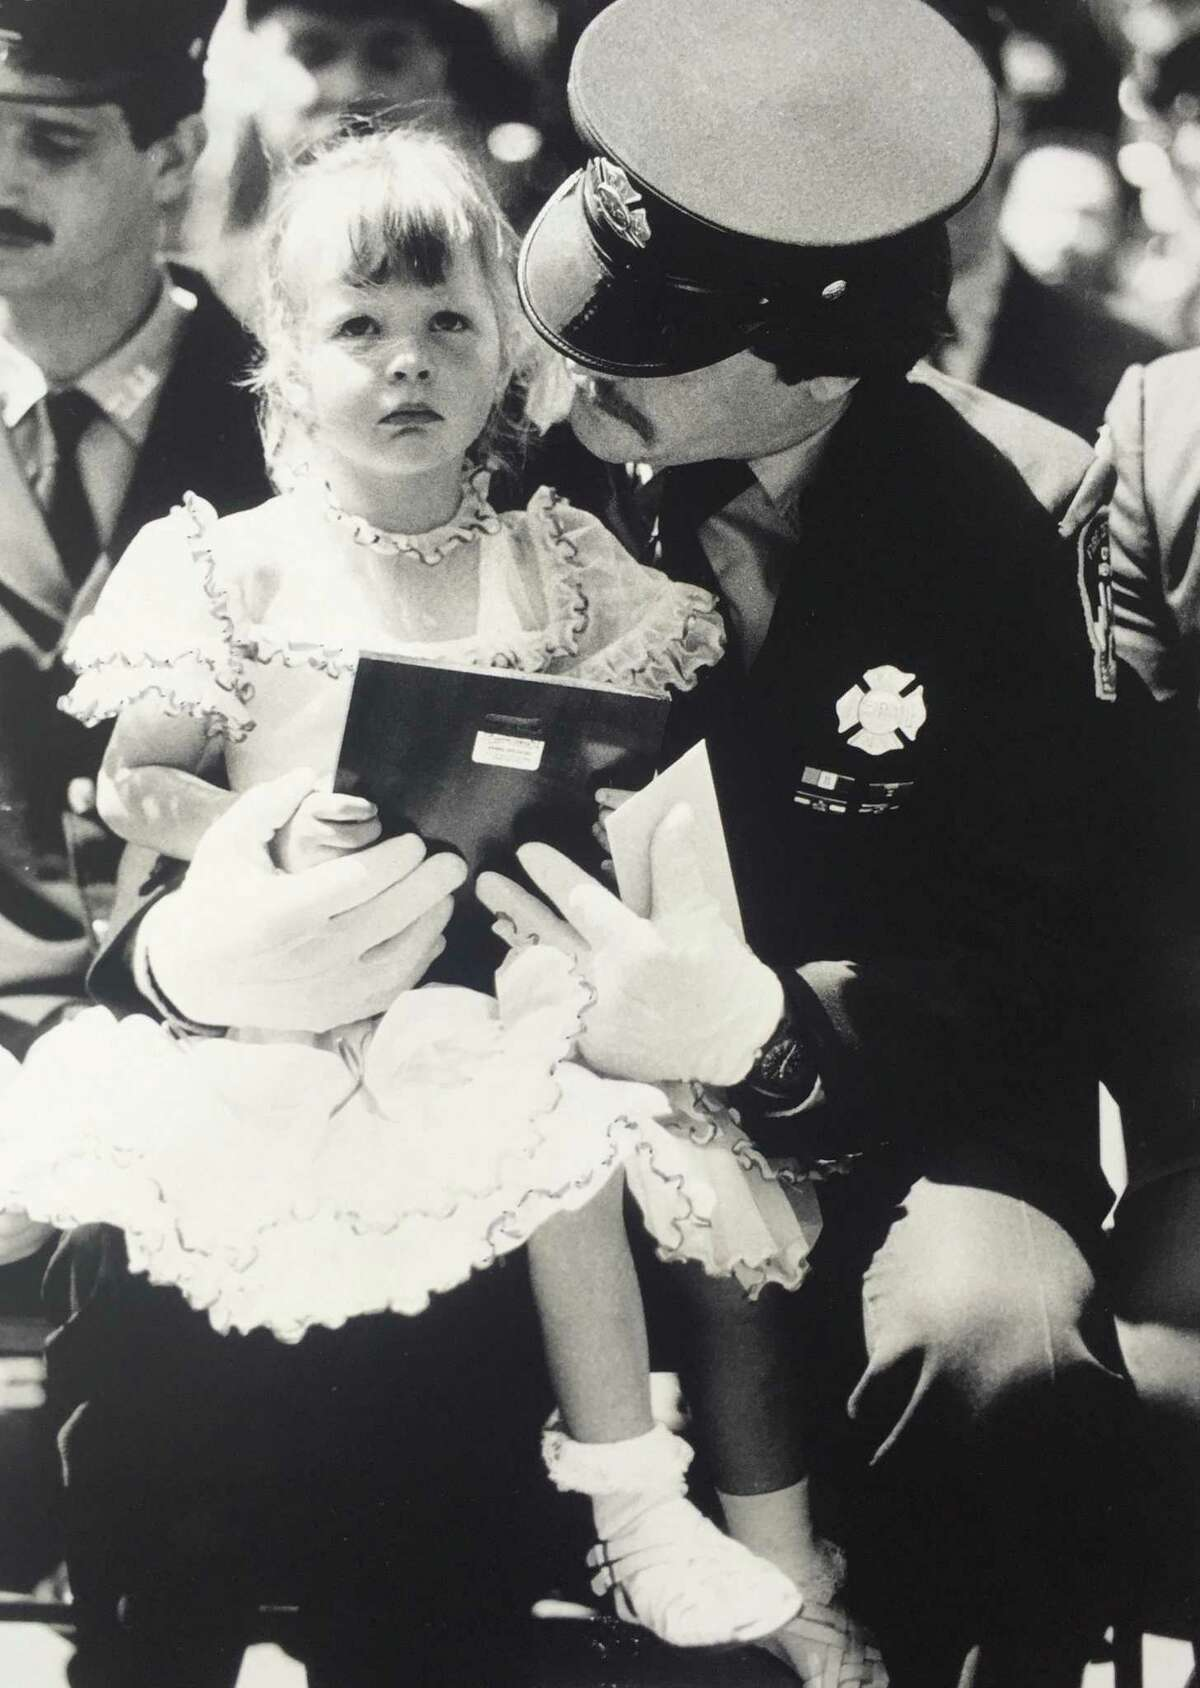 A dated photograph of New York City firefighter Chris Blackwell with one of his daughters, Alexandra. Blackwell died in the World Trade Center attacks on Sept. 11, 2001.